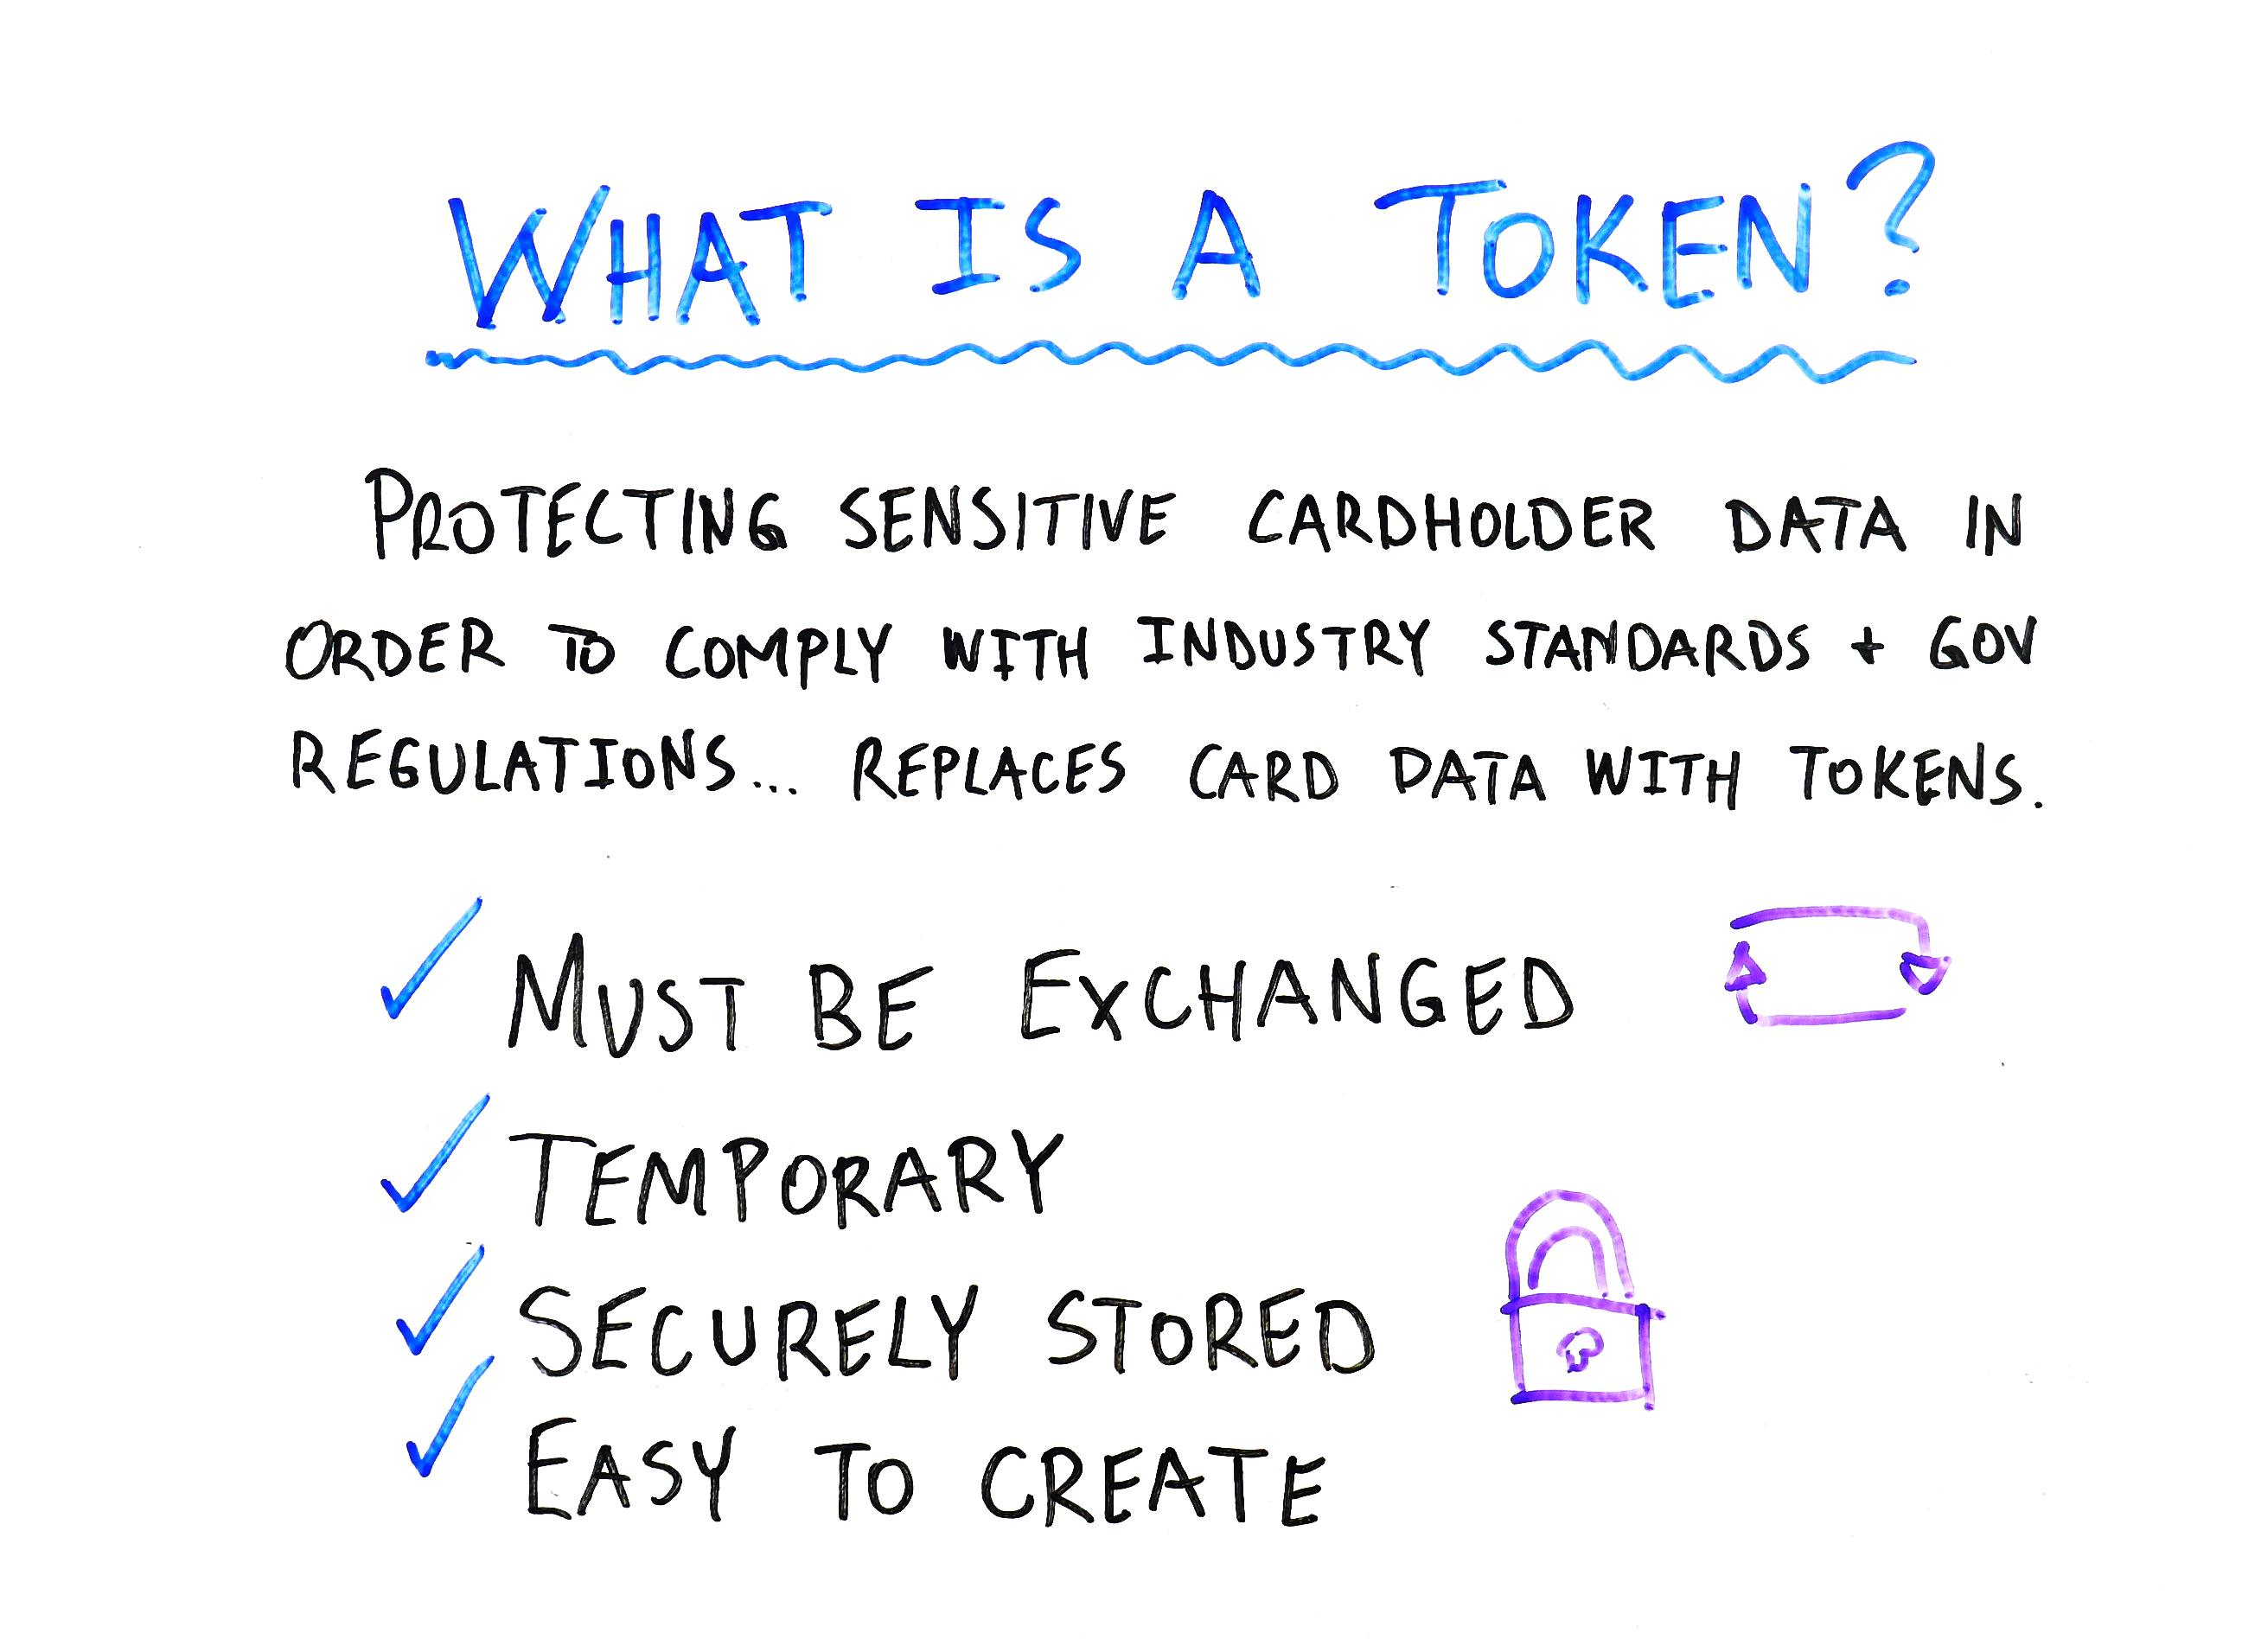 What is a token